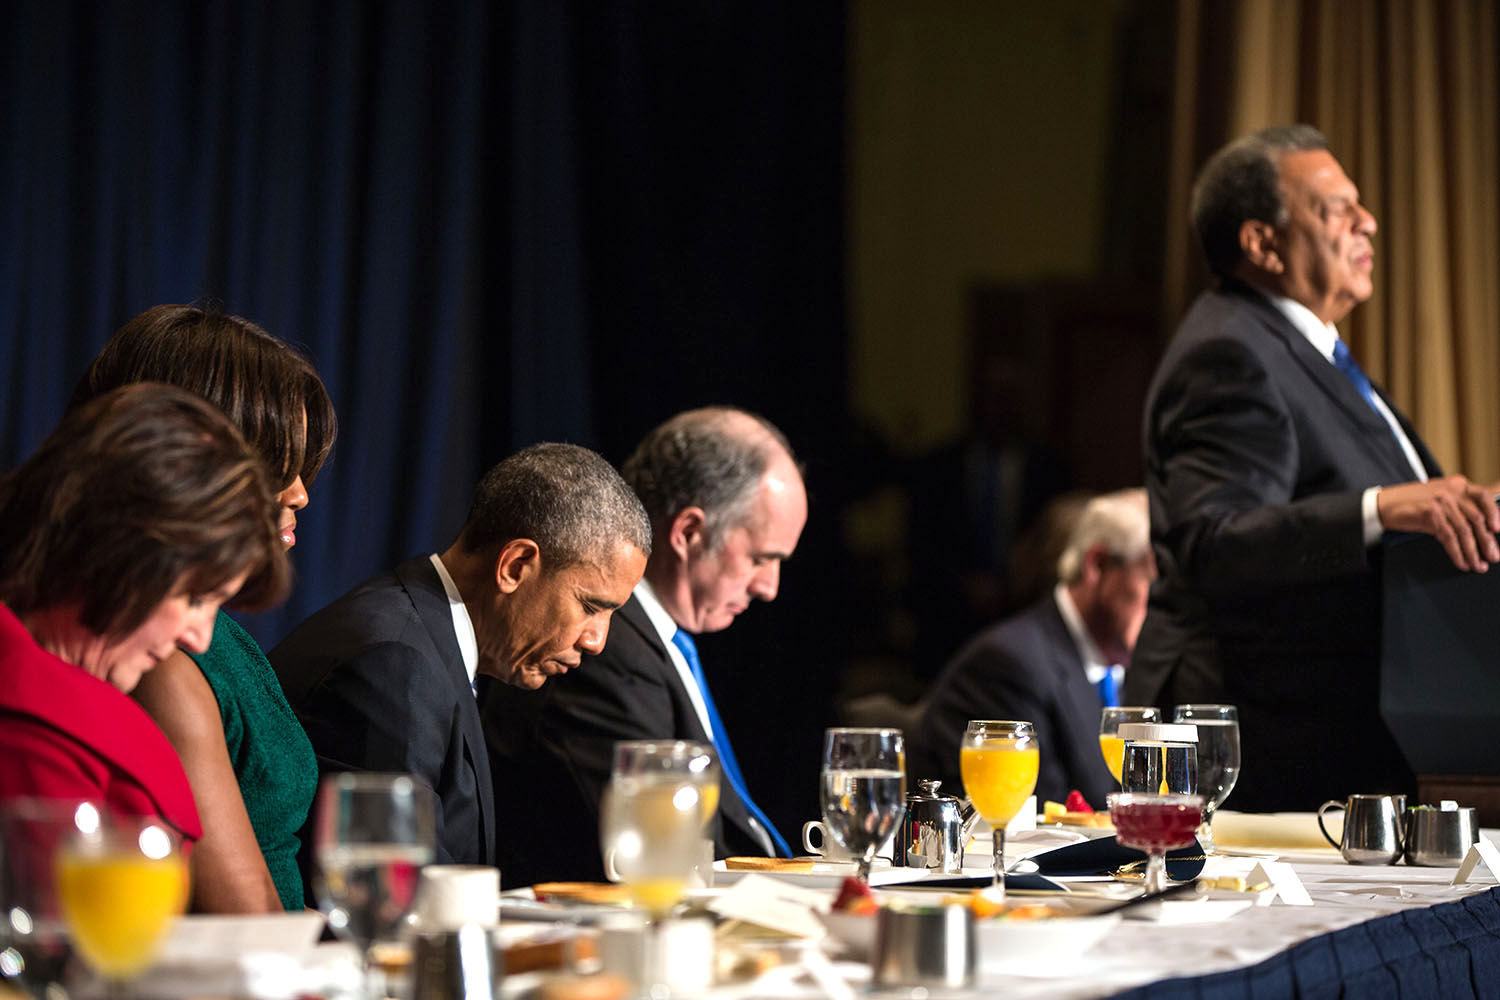 The President and First Lady Michelle Obama join former Atlanta Mayor Andrew Young in the closing prayer during the National Prayer Breakfast